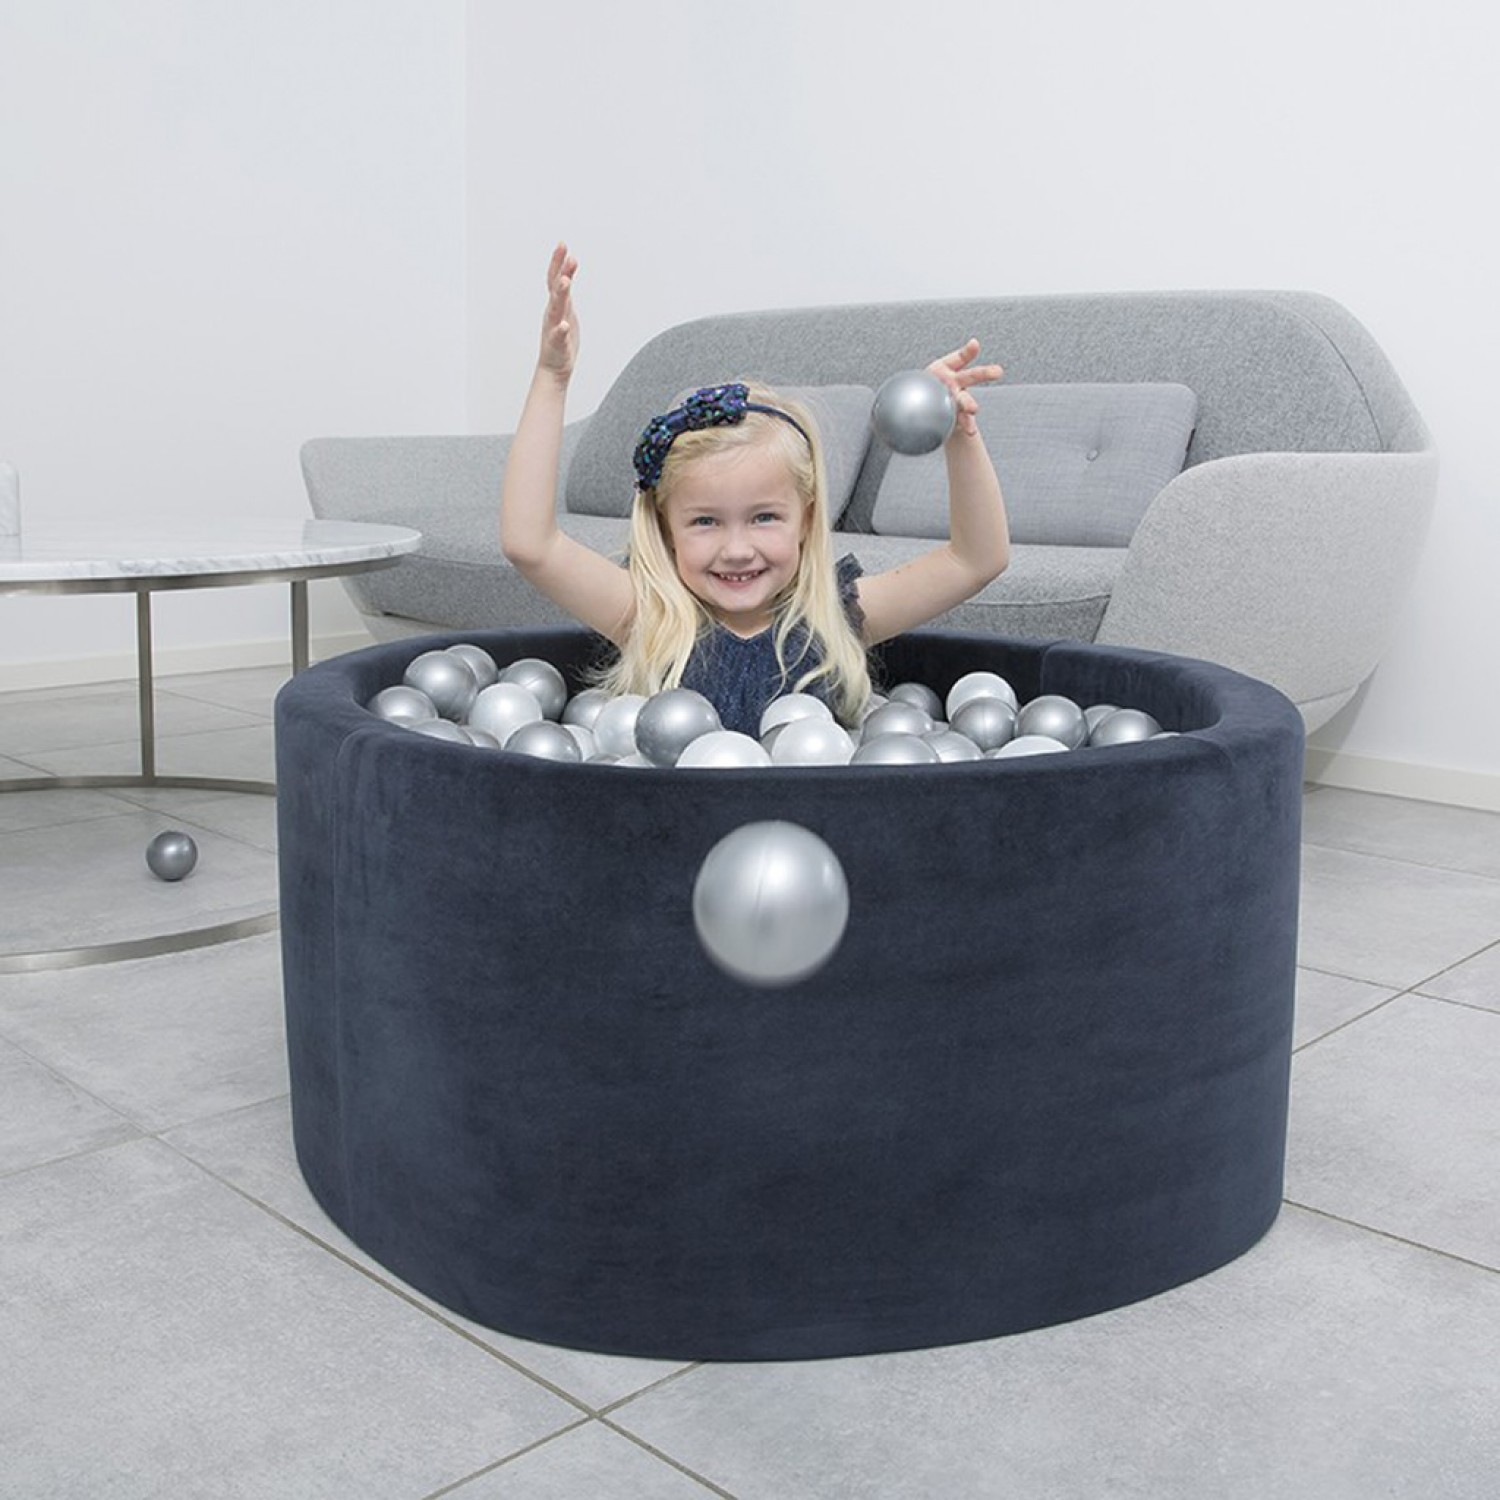 Misioo® Swimming pool with Navy Blue balls